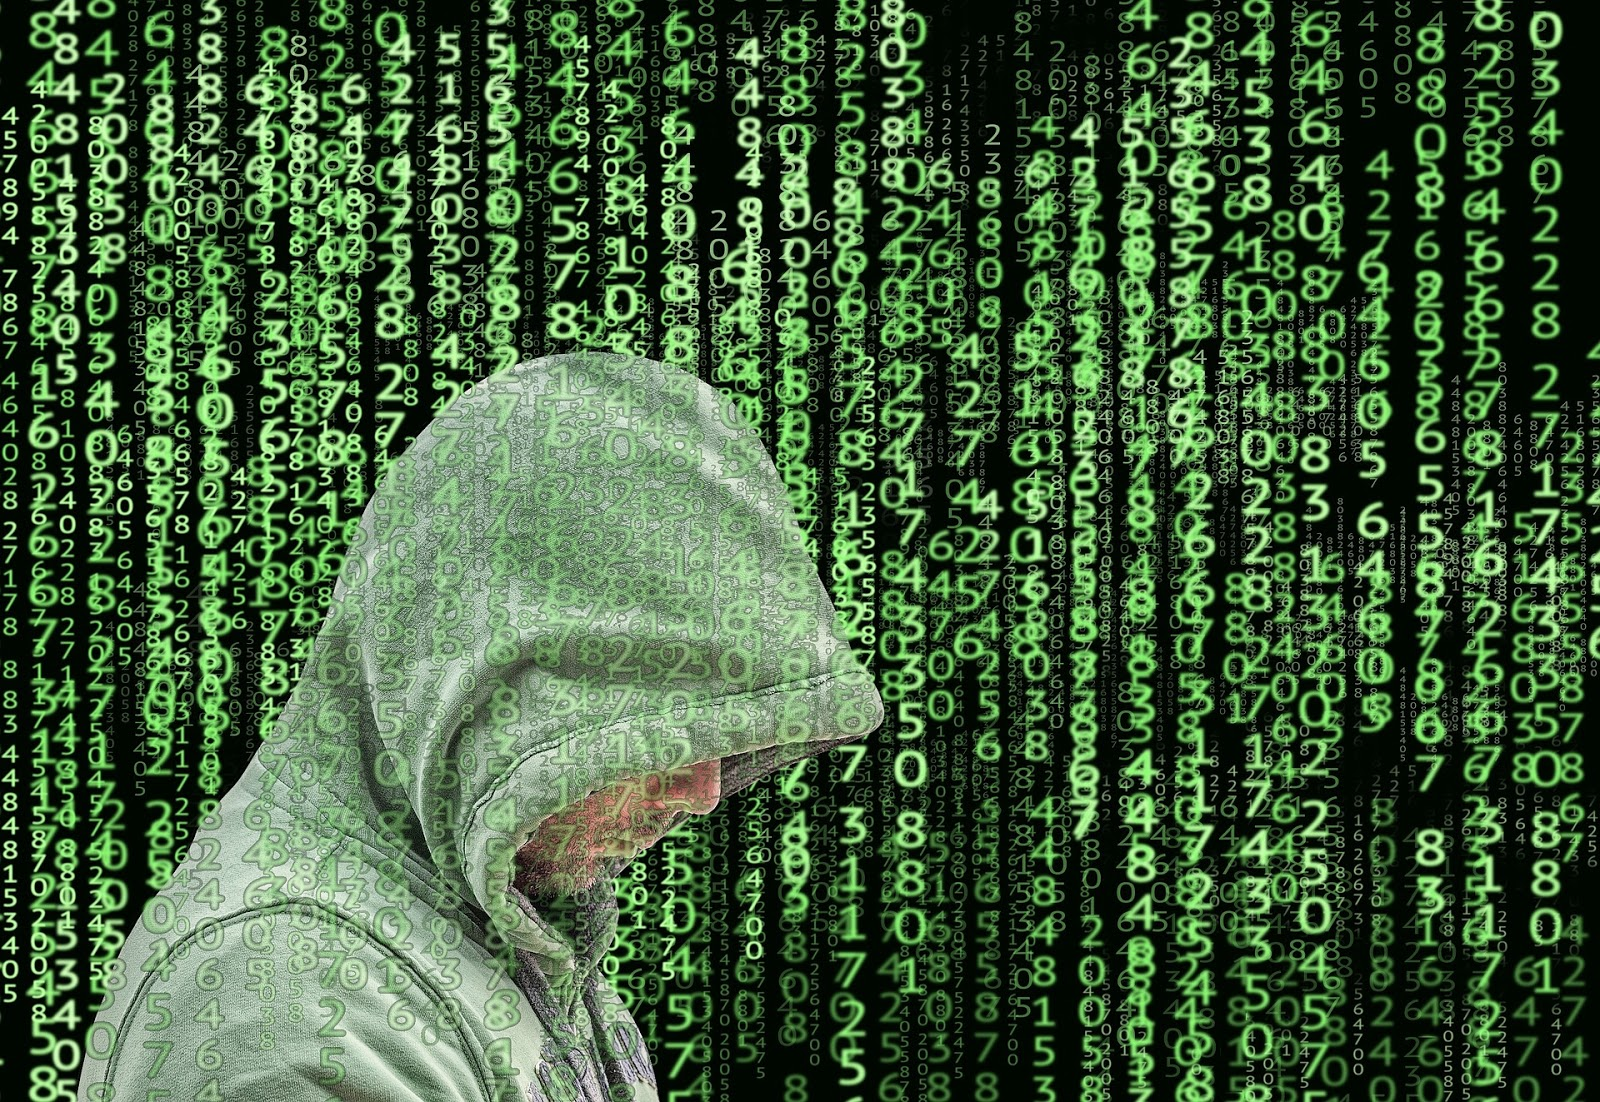 Cybercrime payouts dwarf the old-style robberies